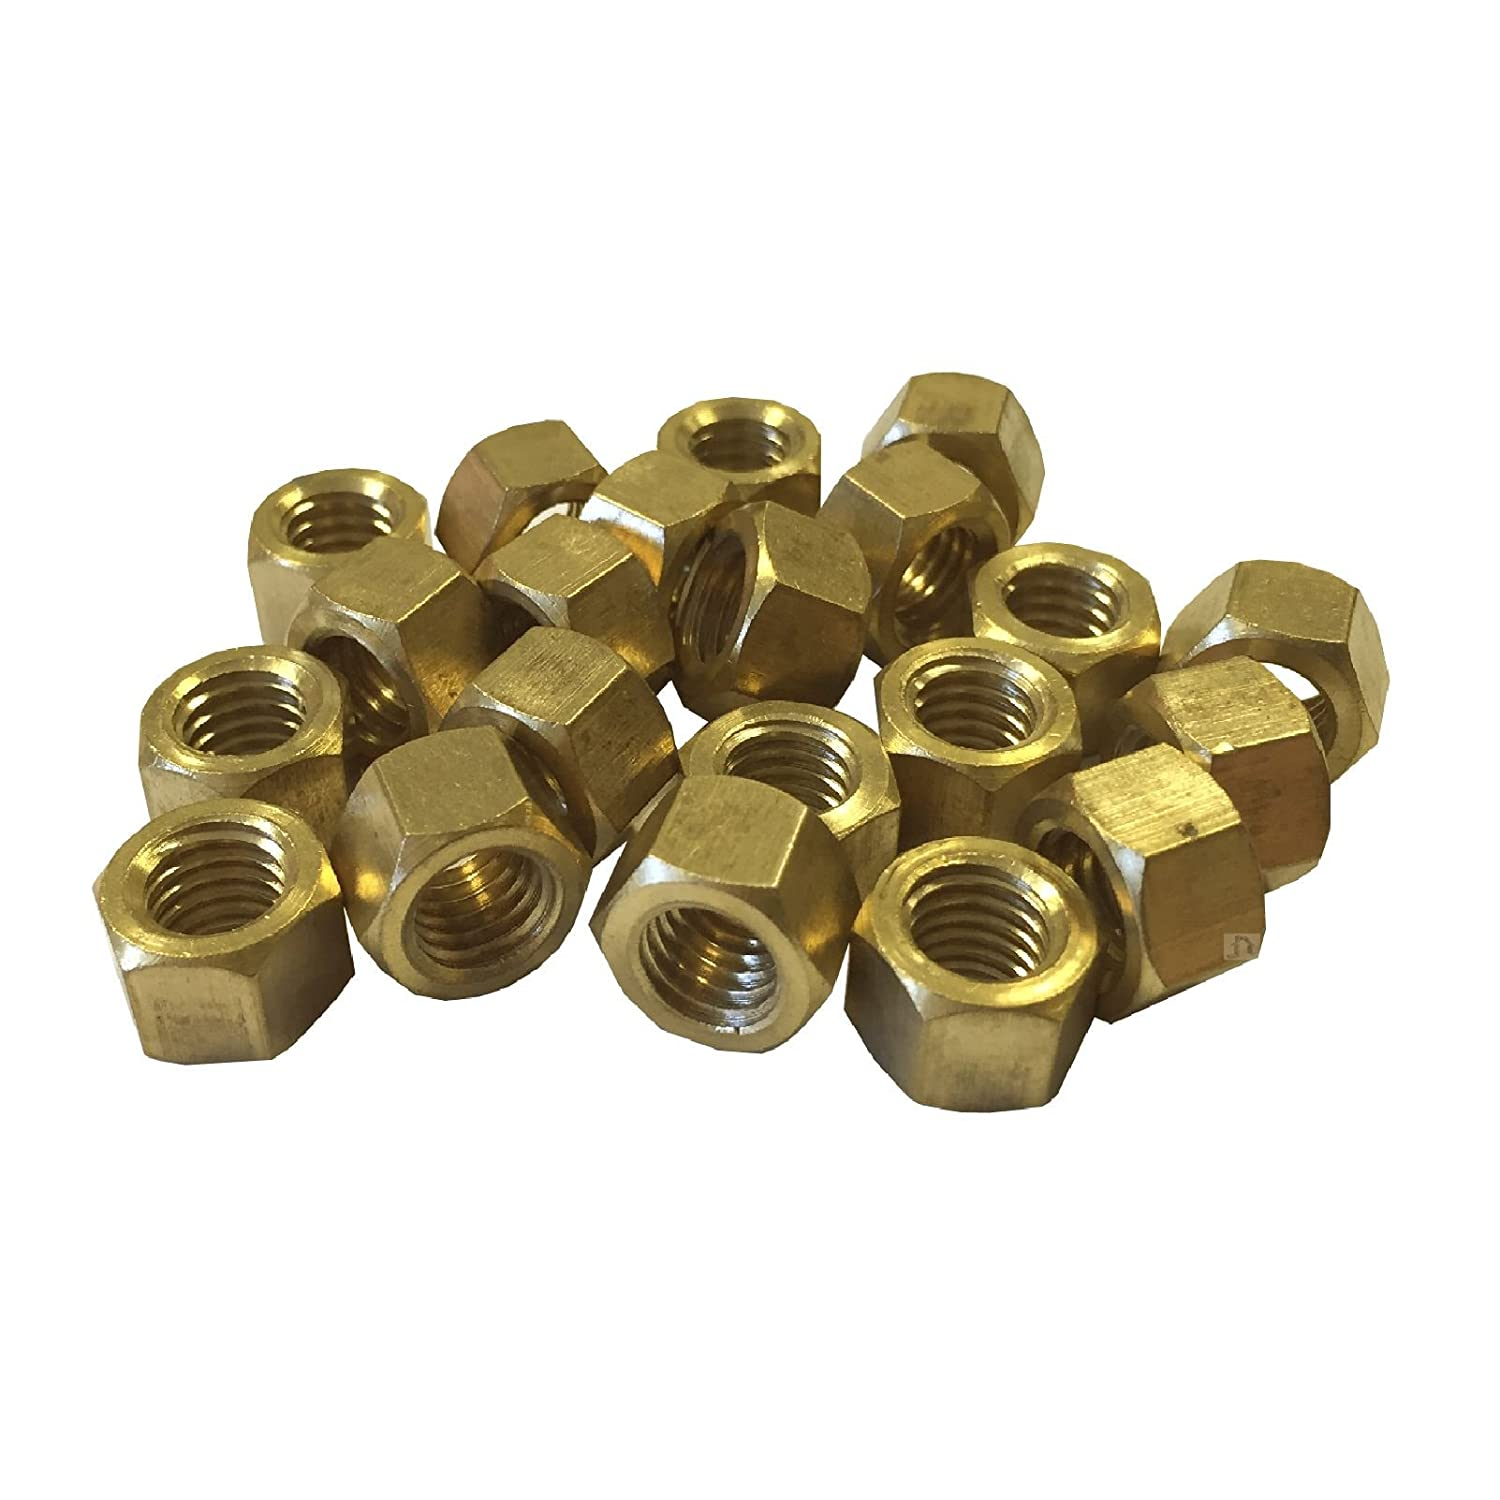 8 x Brass Exhaust Manifold Nuts M8 x 1.25 Pitch High Temperature Home.smart